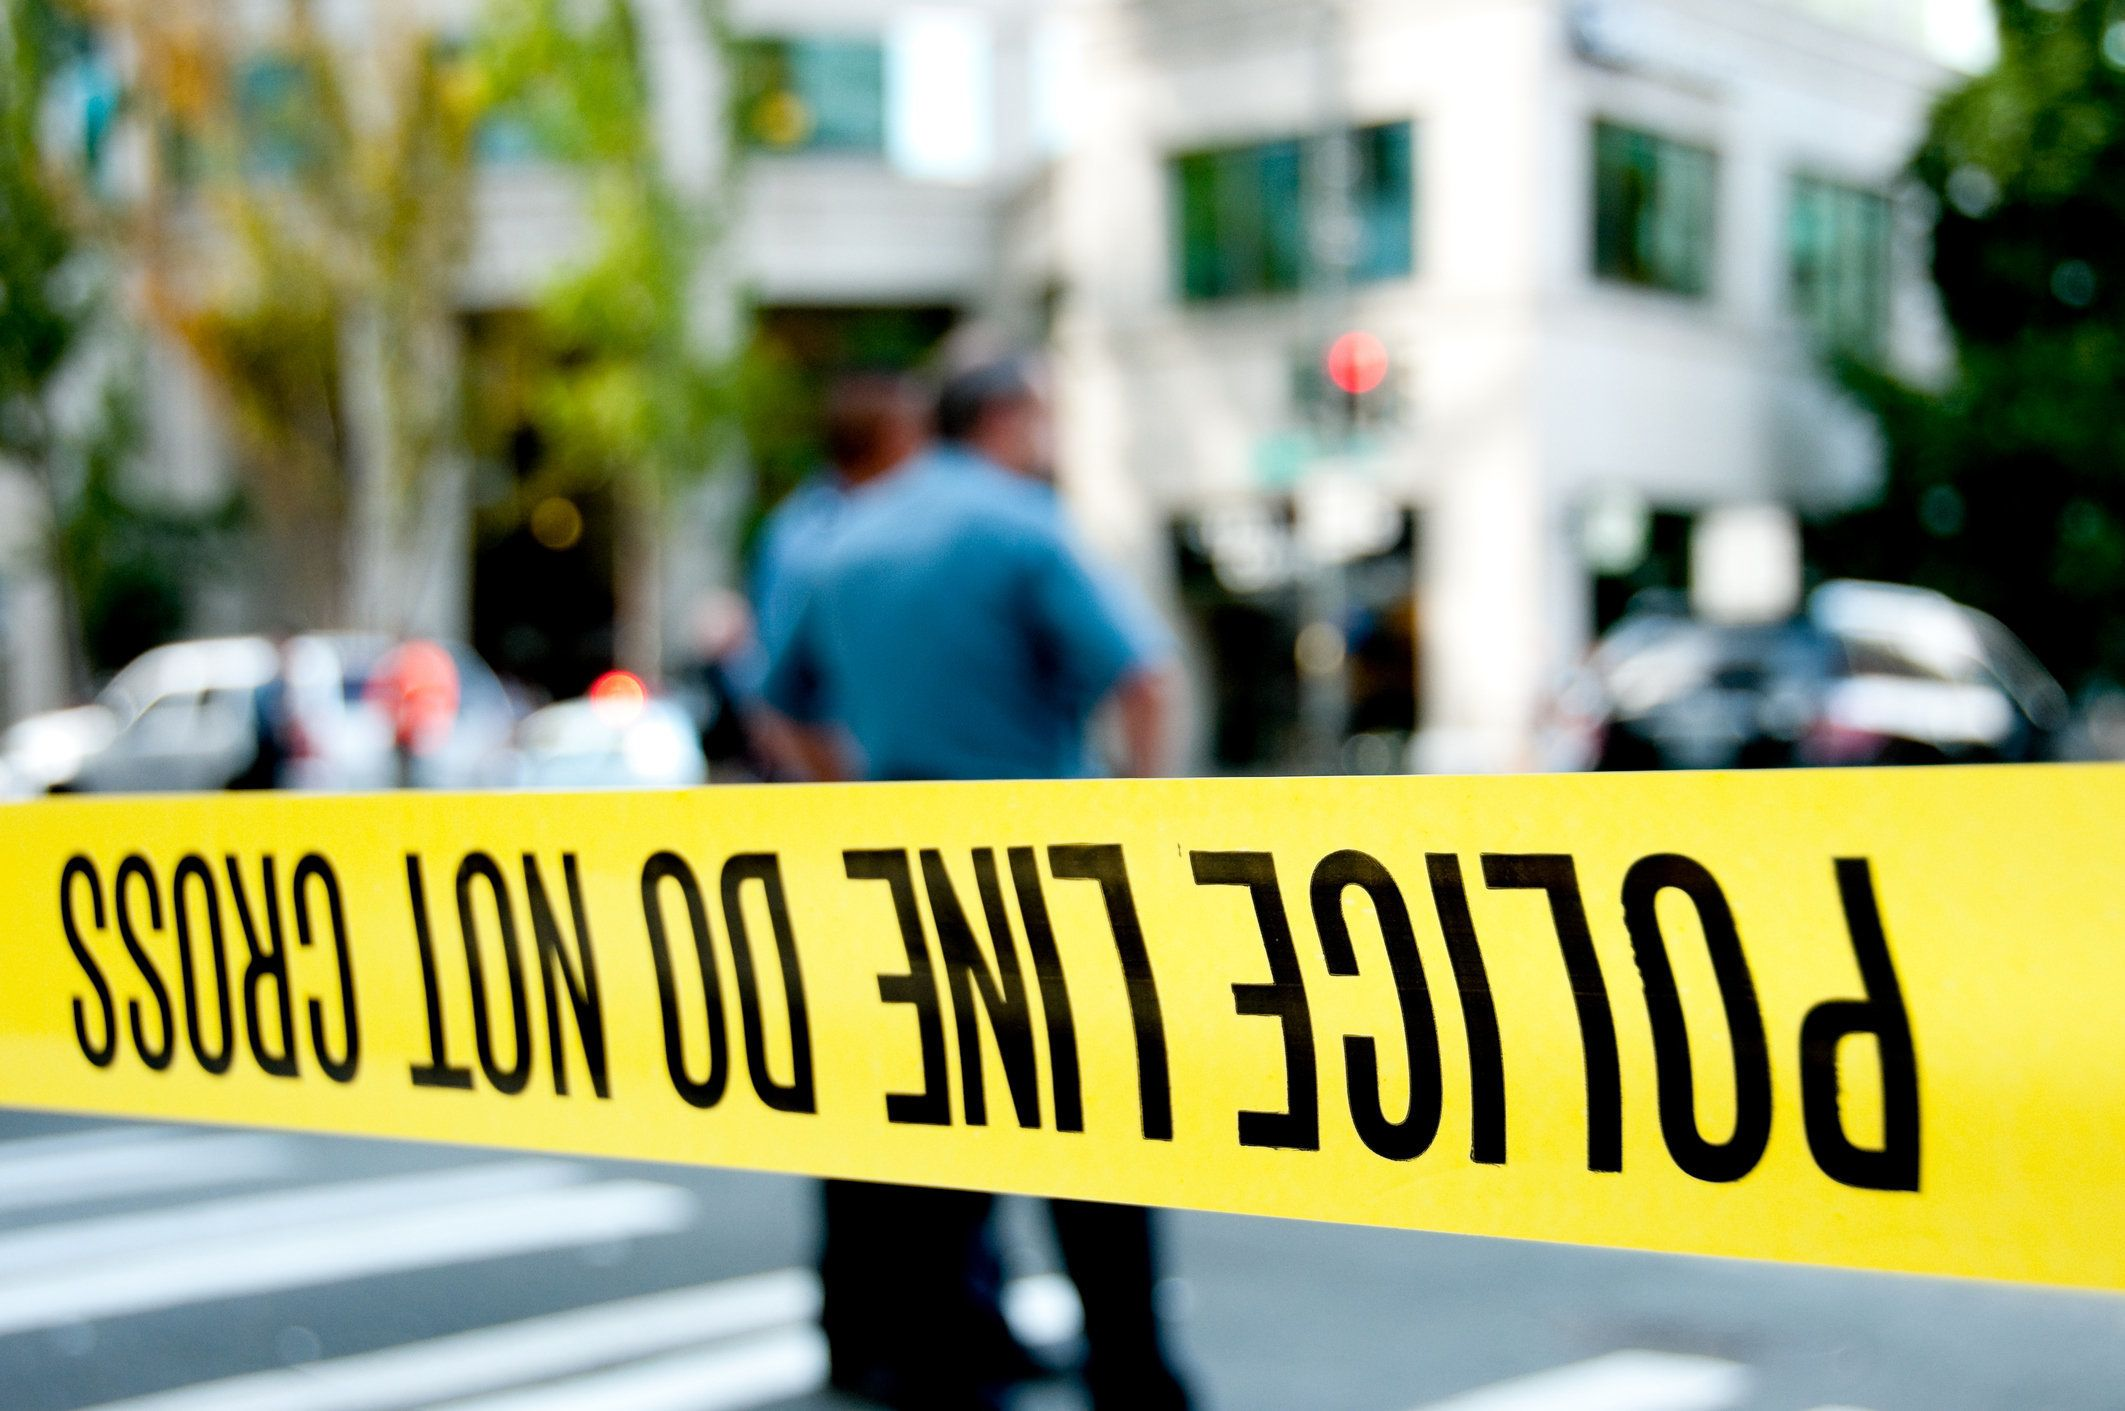 The federal government should know -- and tell us-- how many people police kill each year. But the public needs to know